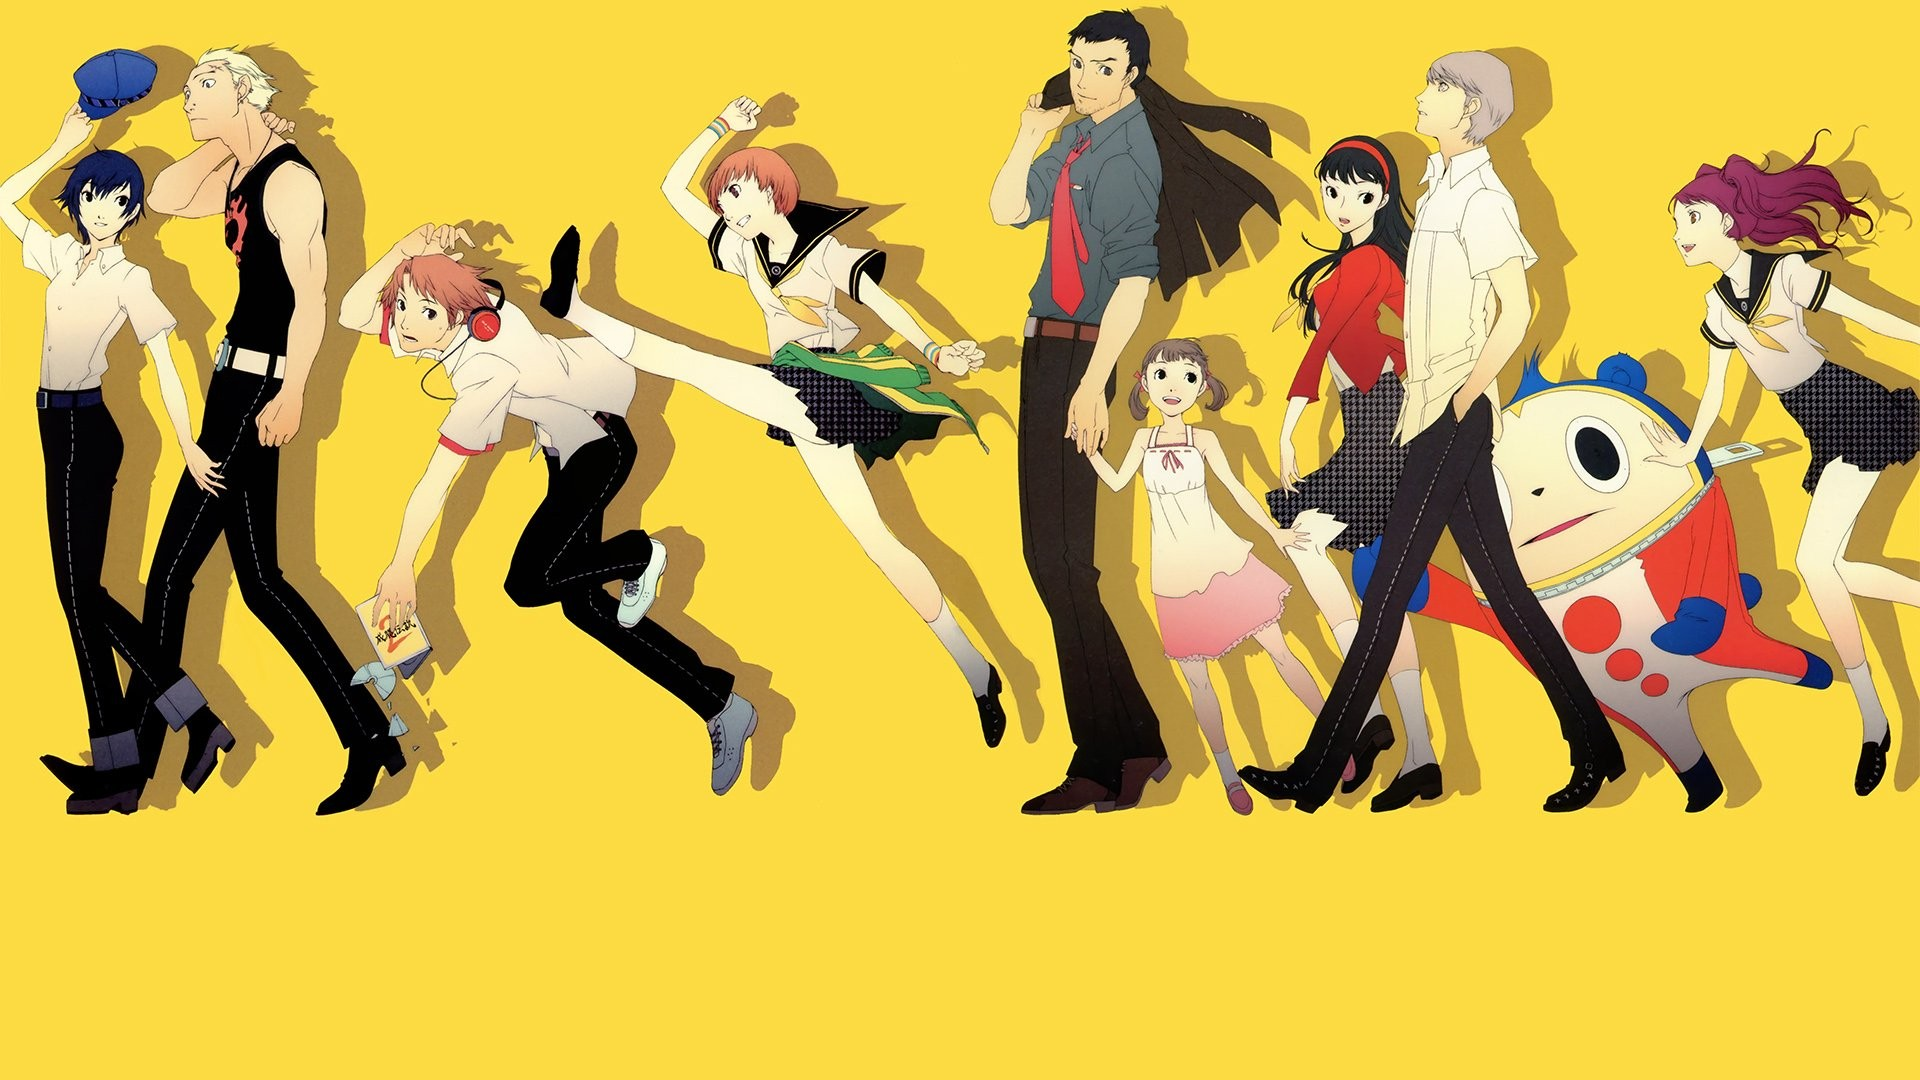 Persona 4 wallpaper ·① Download free HD wallpapers for ...